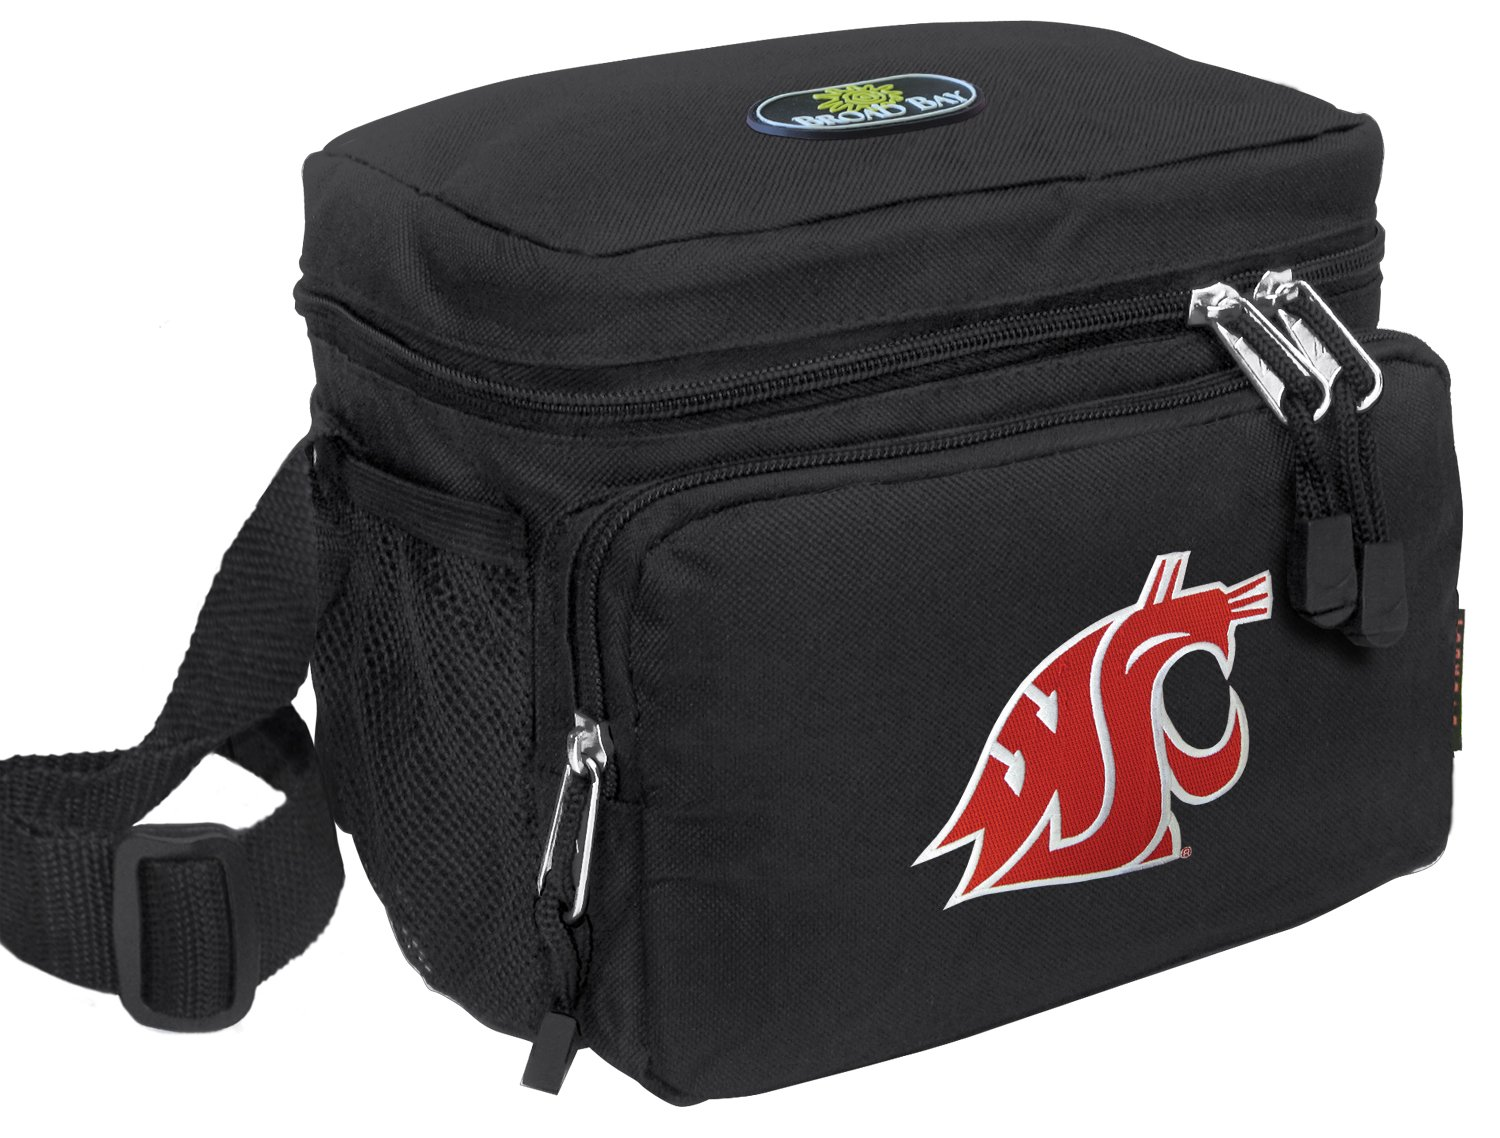 Washington State University Lunch Bag OFFICIAL NCAA Washington State Lunchboxes Broad Bay